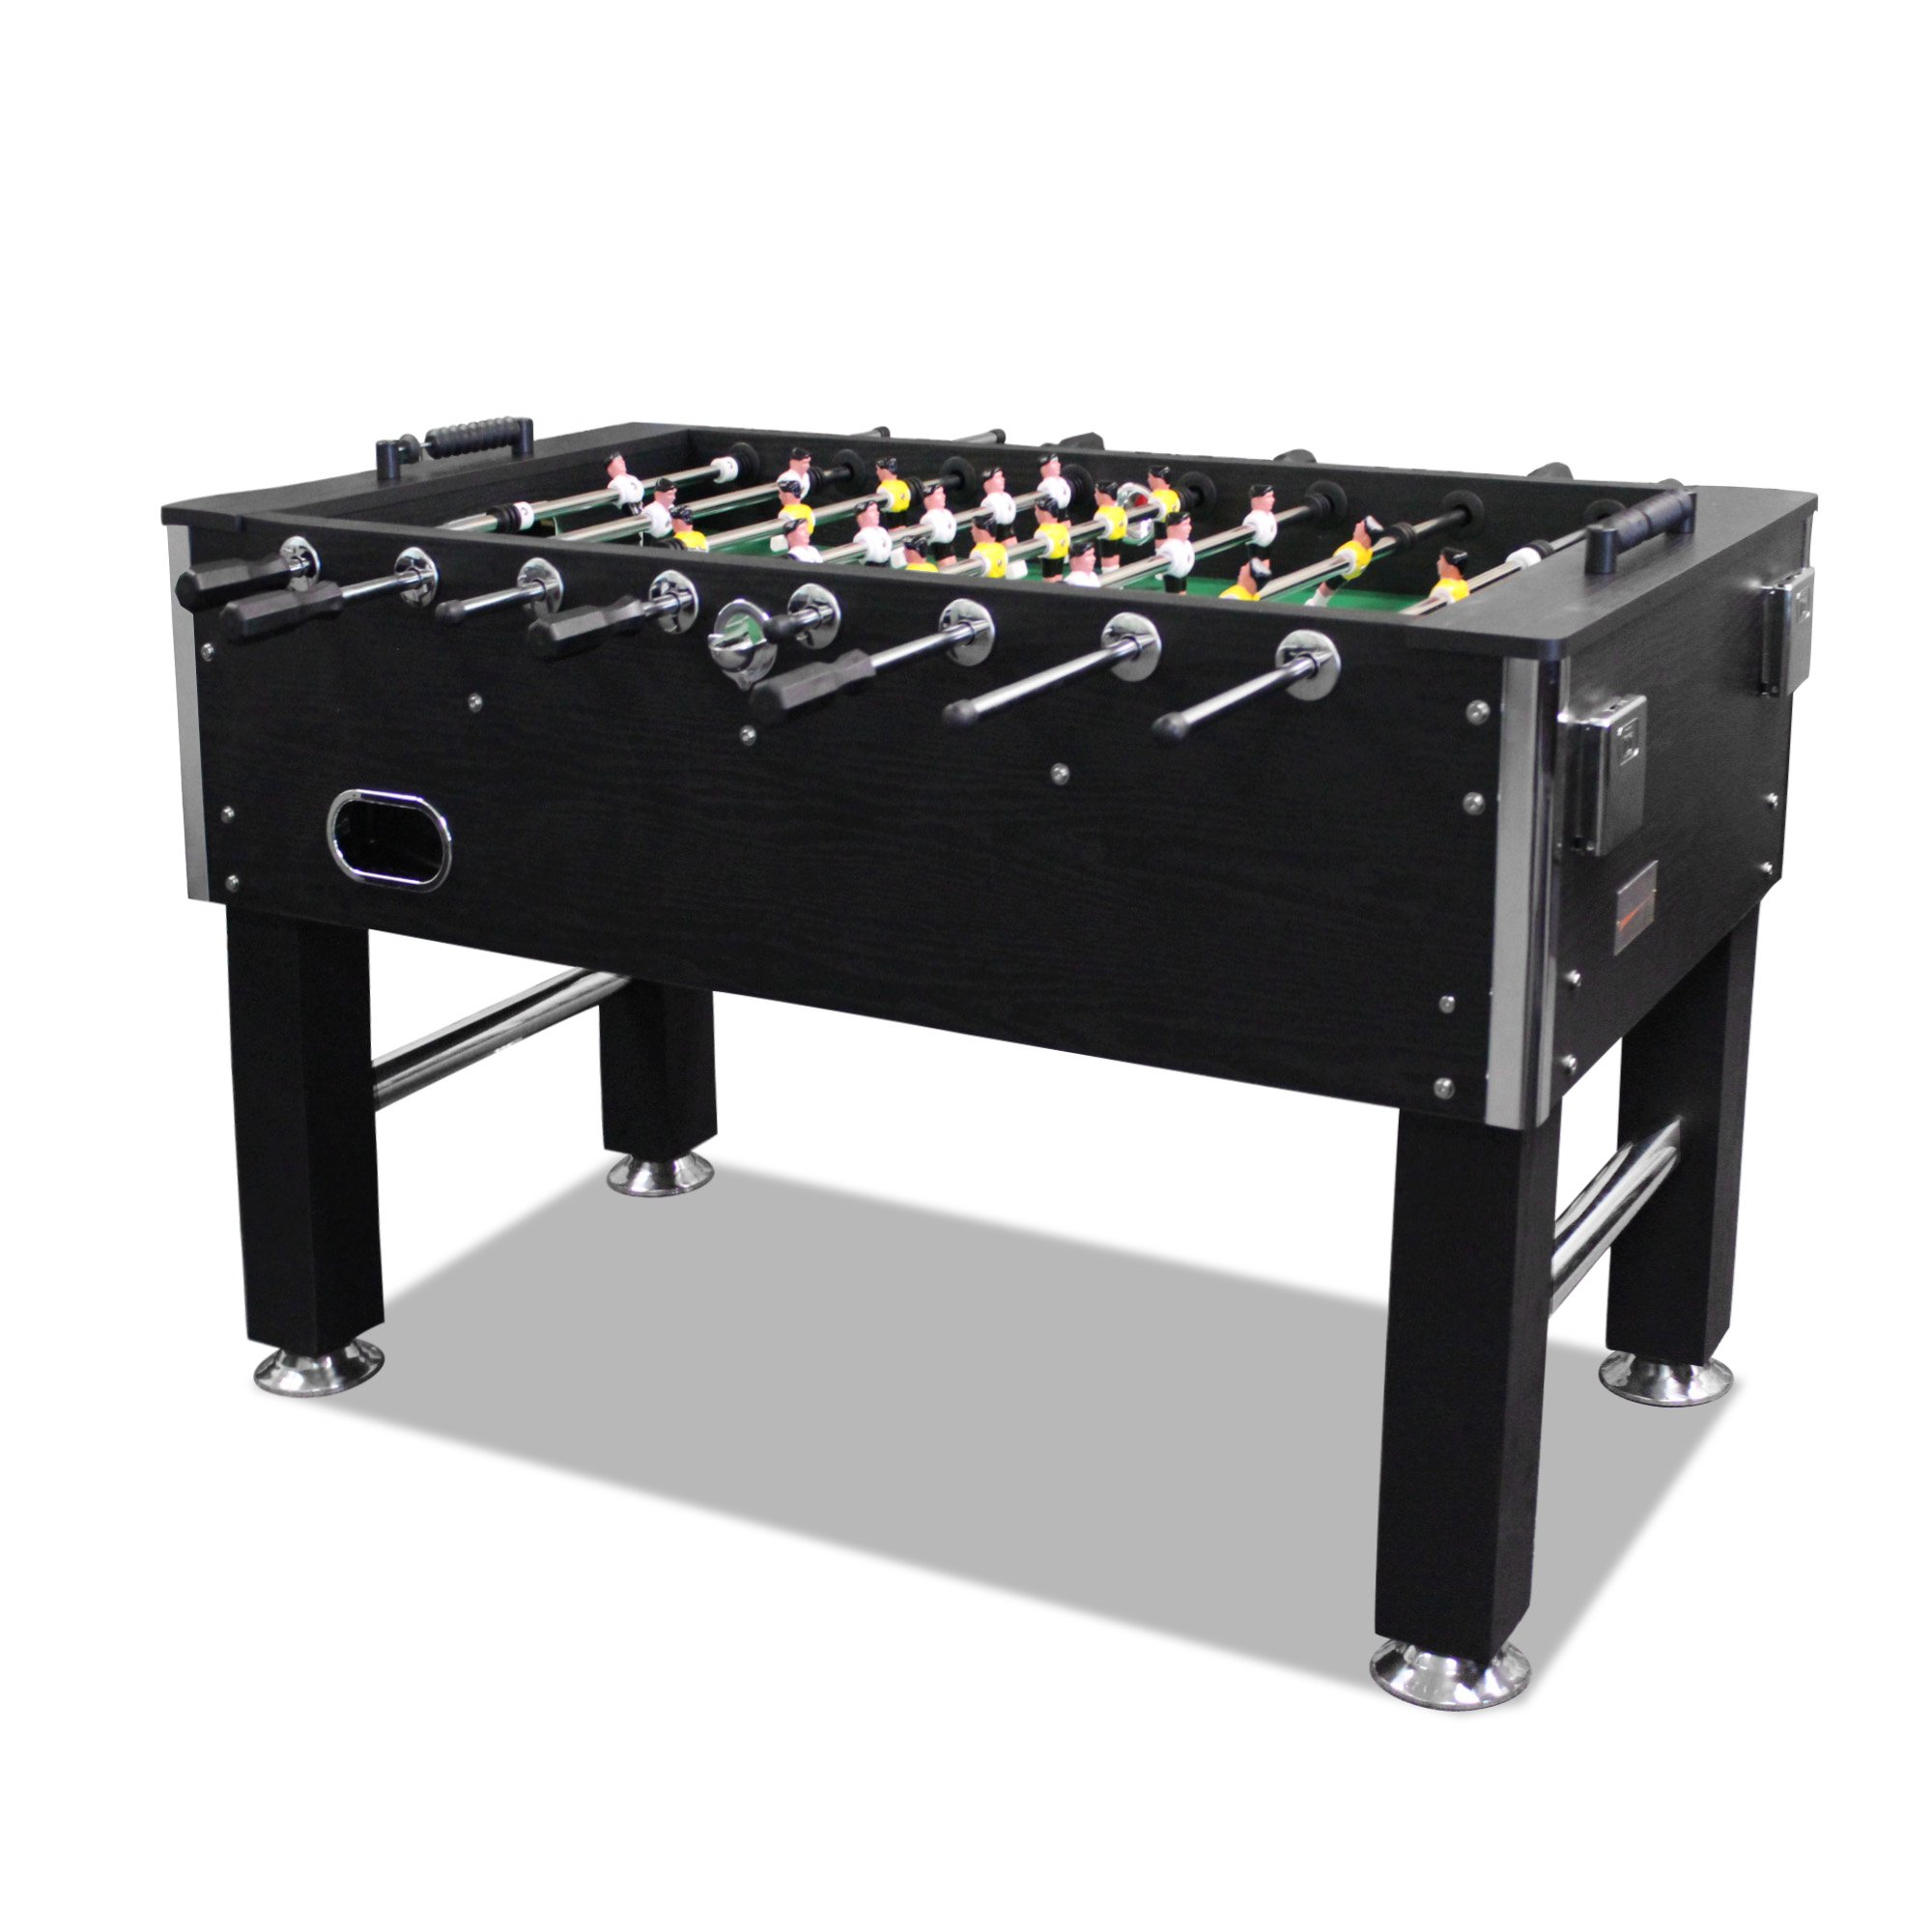 T&R sports 60'' Soccer Foosball Table Heavy Duty for Pub Game Room with Drink Holders, Black